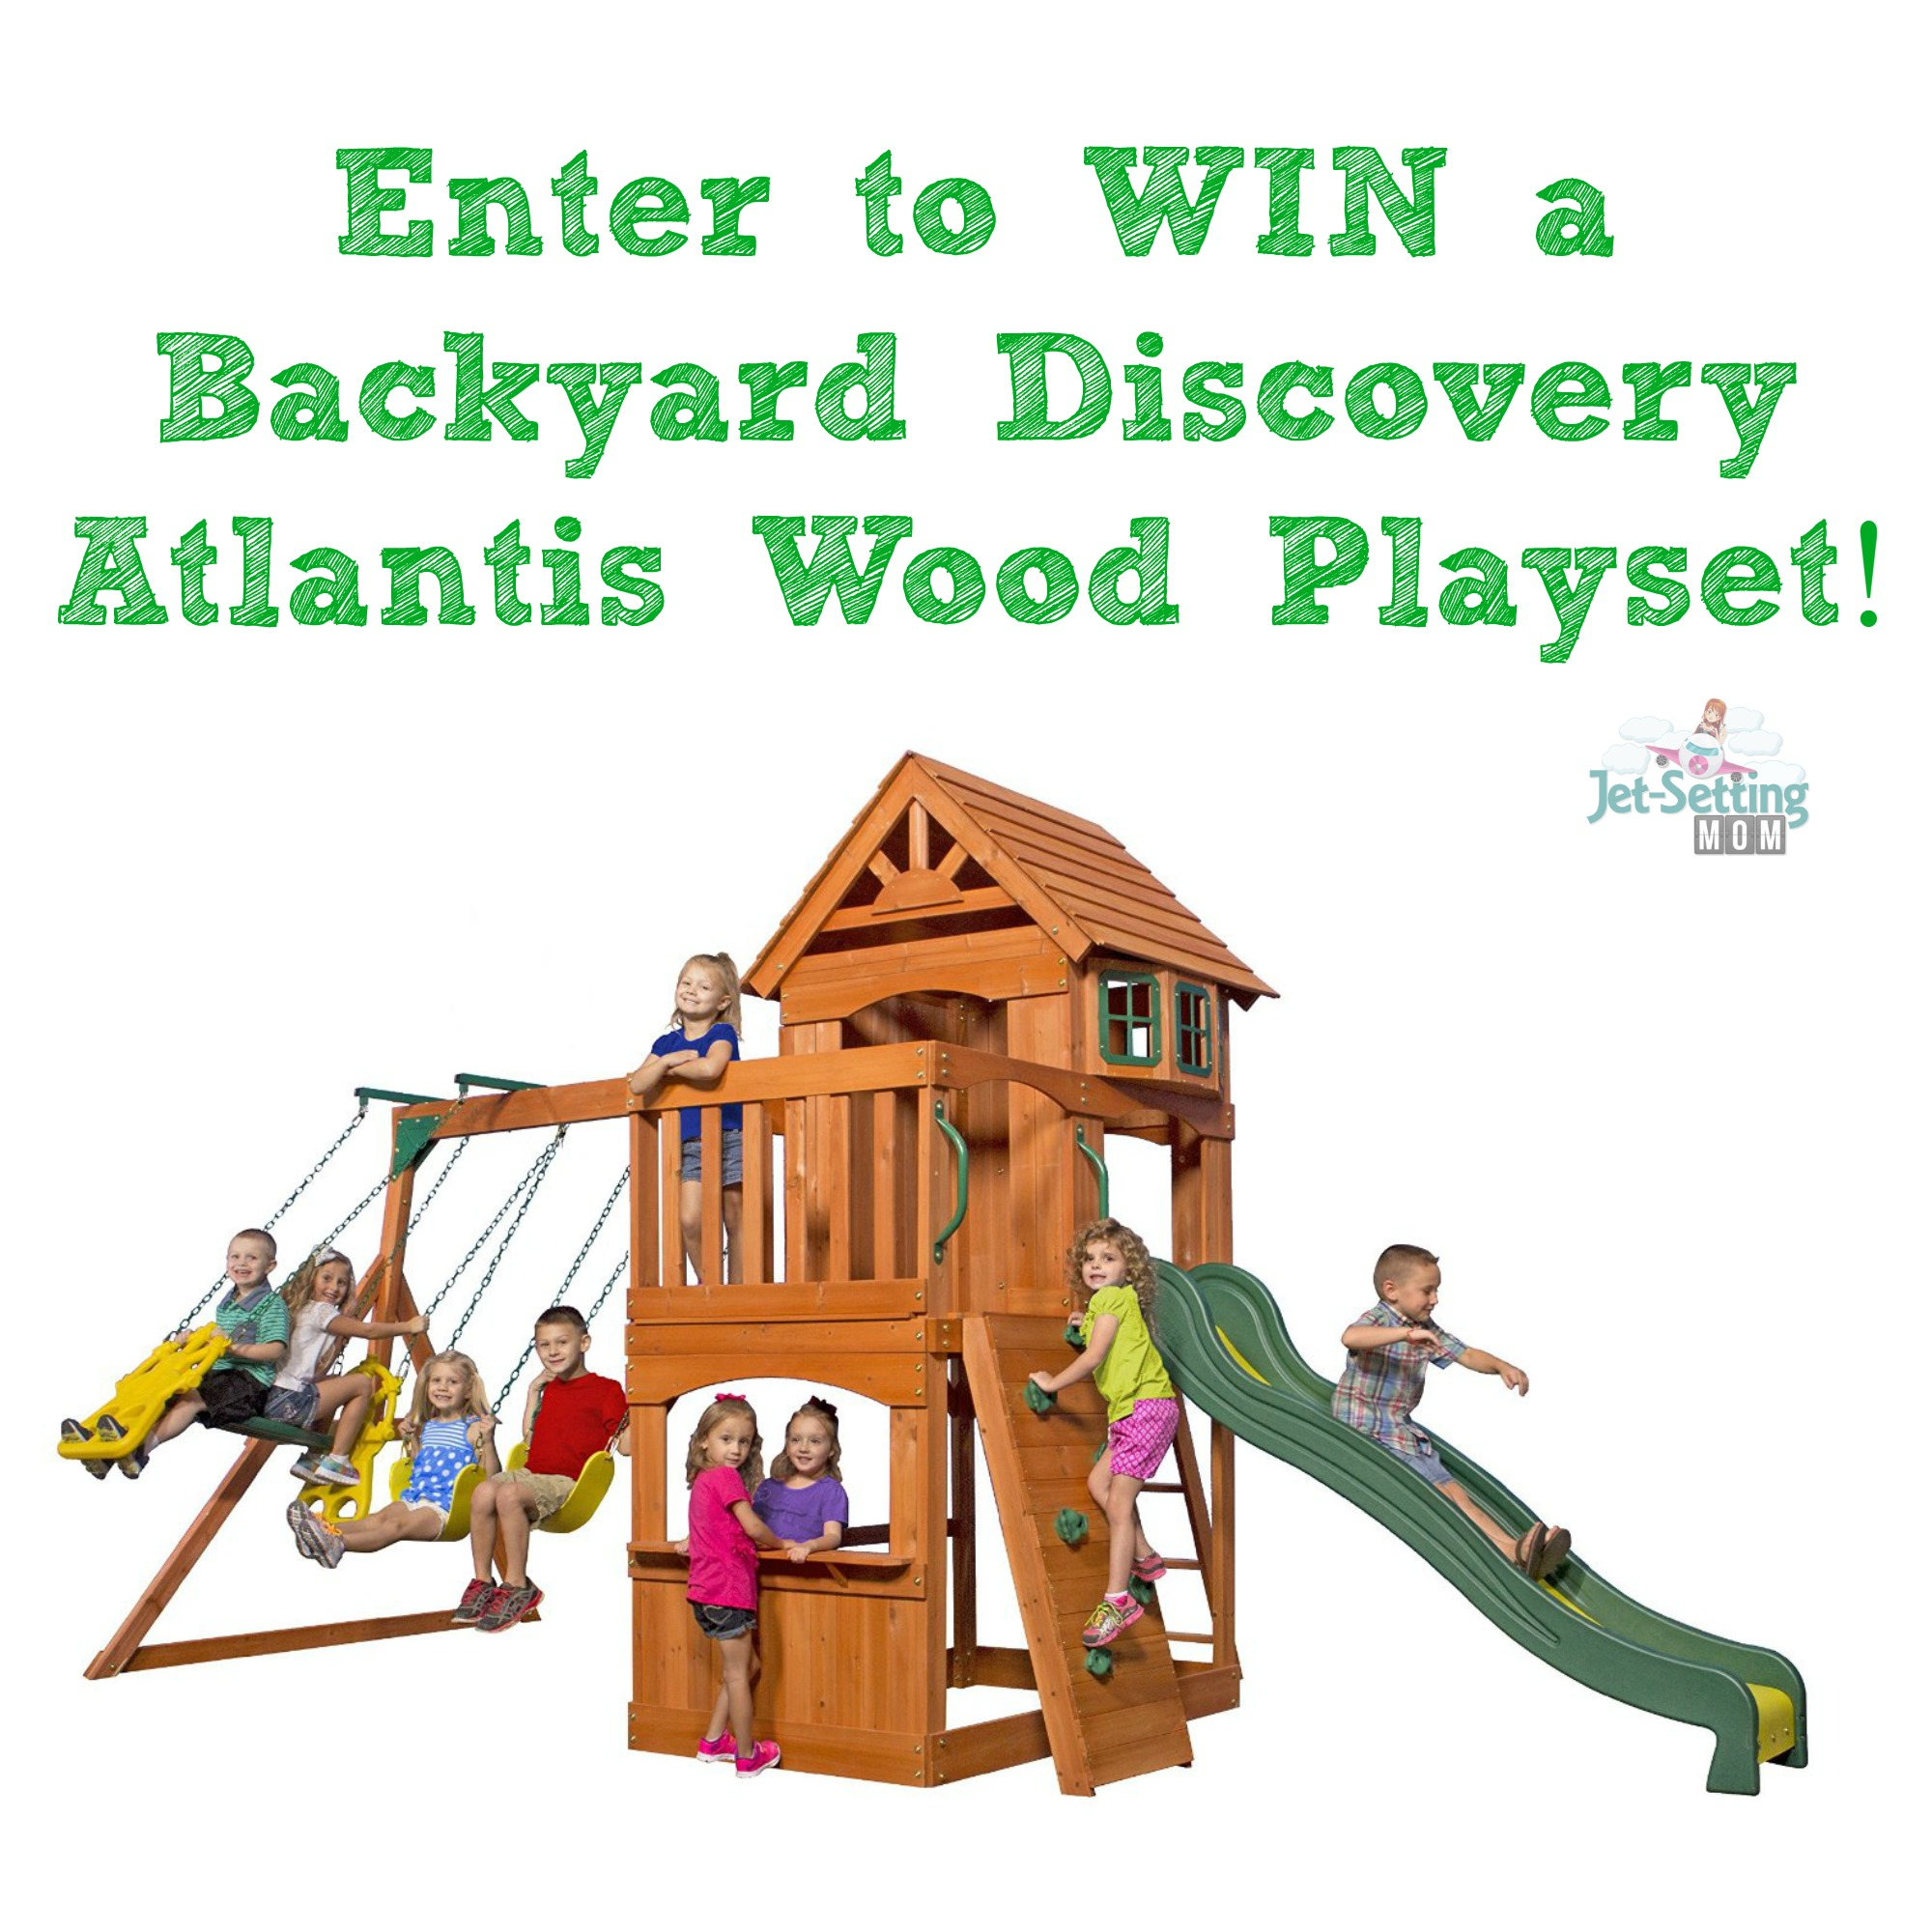 Enter to win a backyard discovery playset at Jetsettingmom.com!